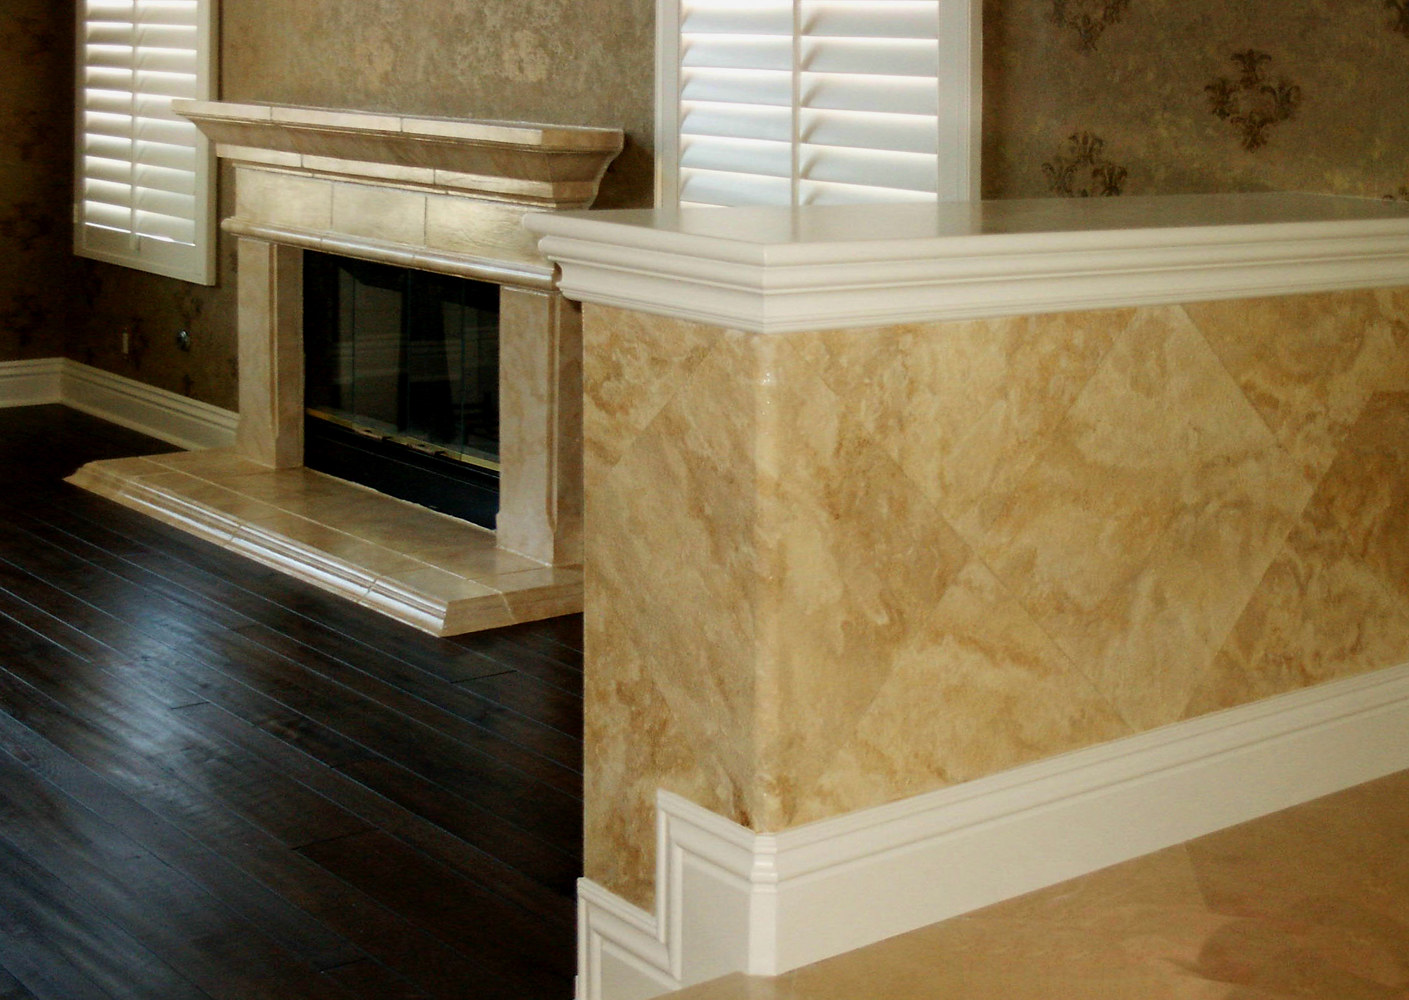 Pony wall and Fireplace in Travertine to Match Flooring Anaheim Hills by Robert Milling